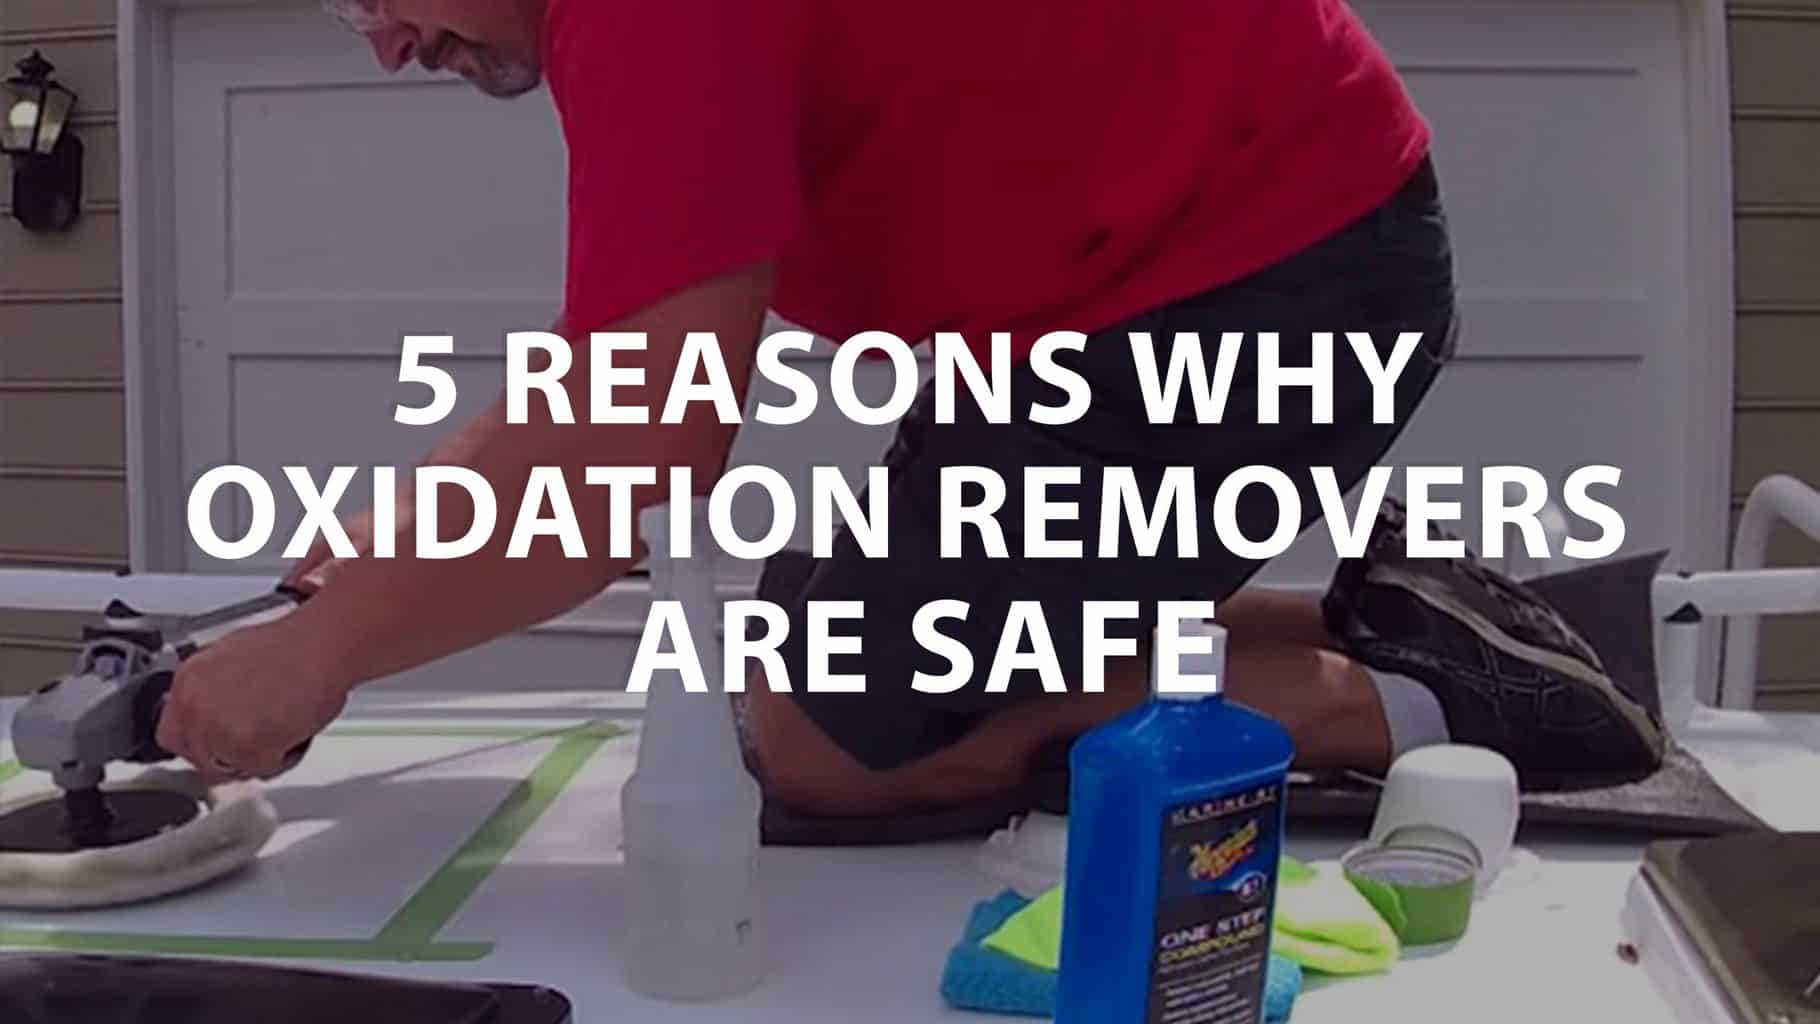 featured image on 5 Reasons Why Oxidation Removers are Safe